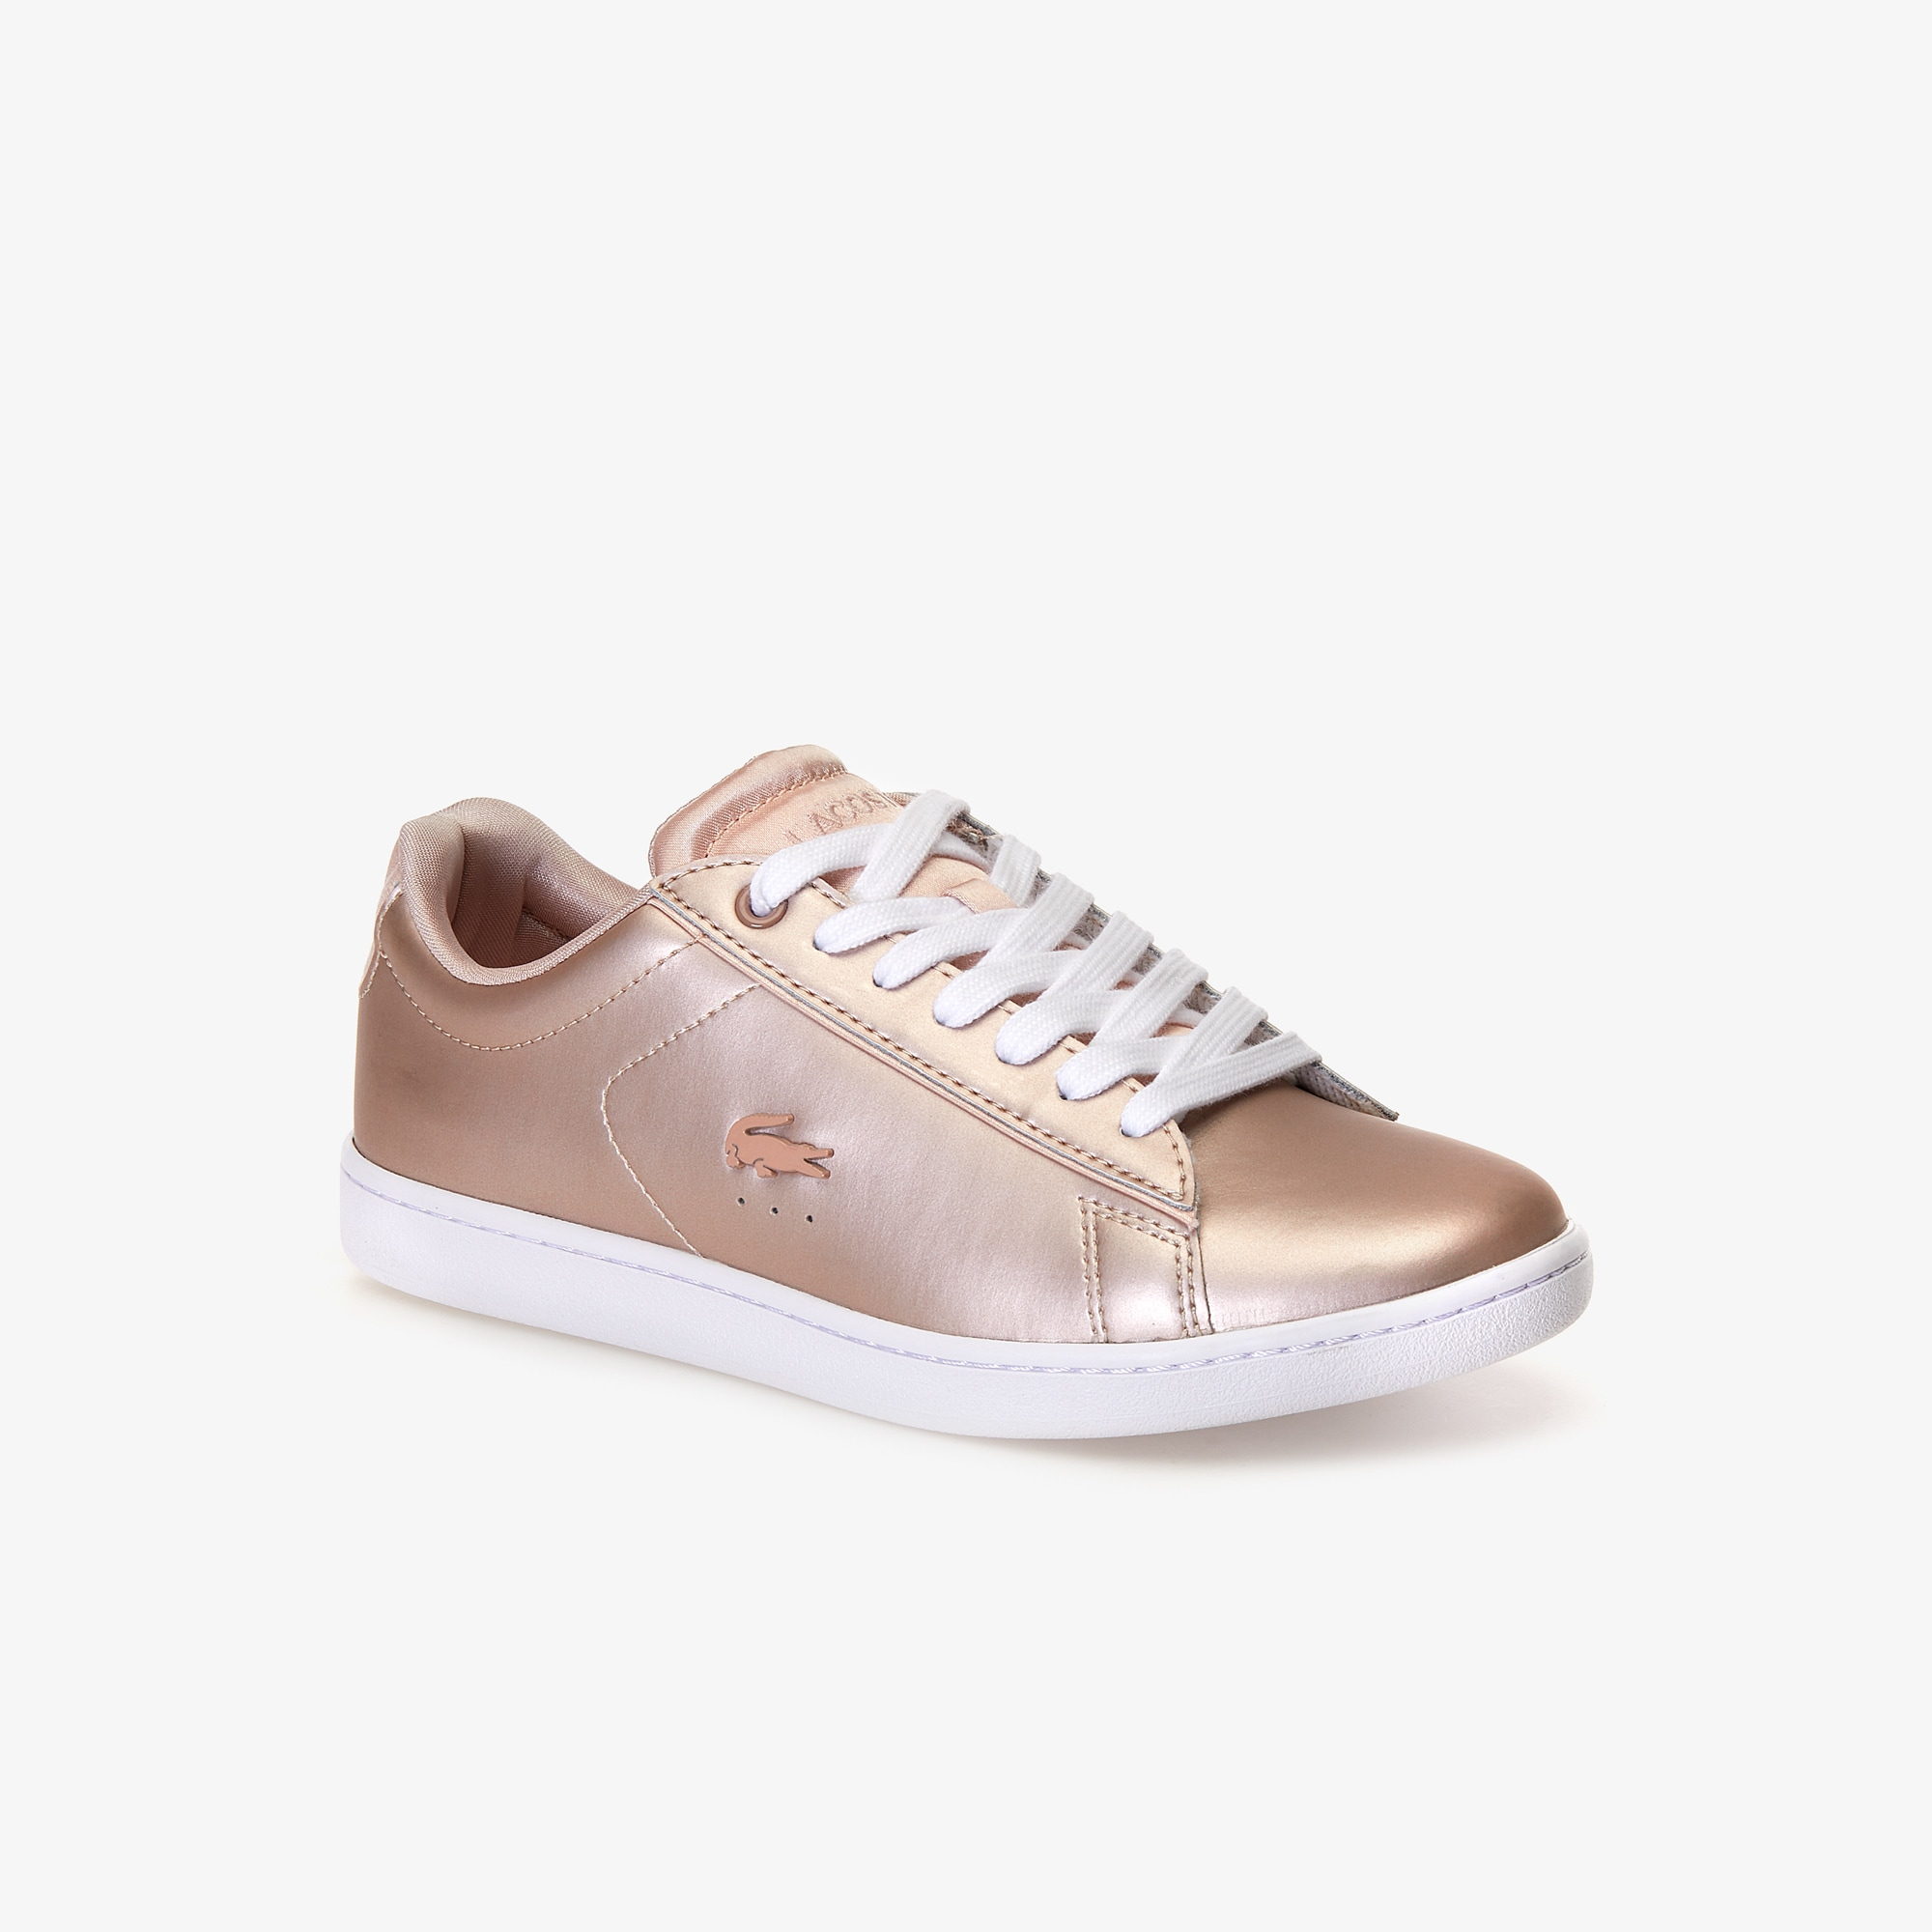 d13a16b5df2338 Women s Carnaby Evo Leather Sneakers